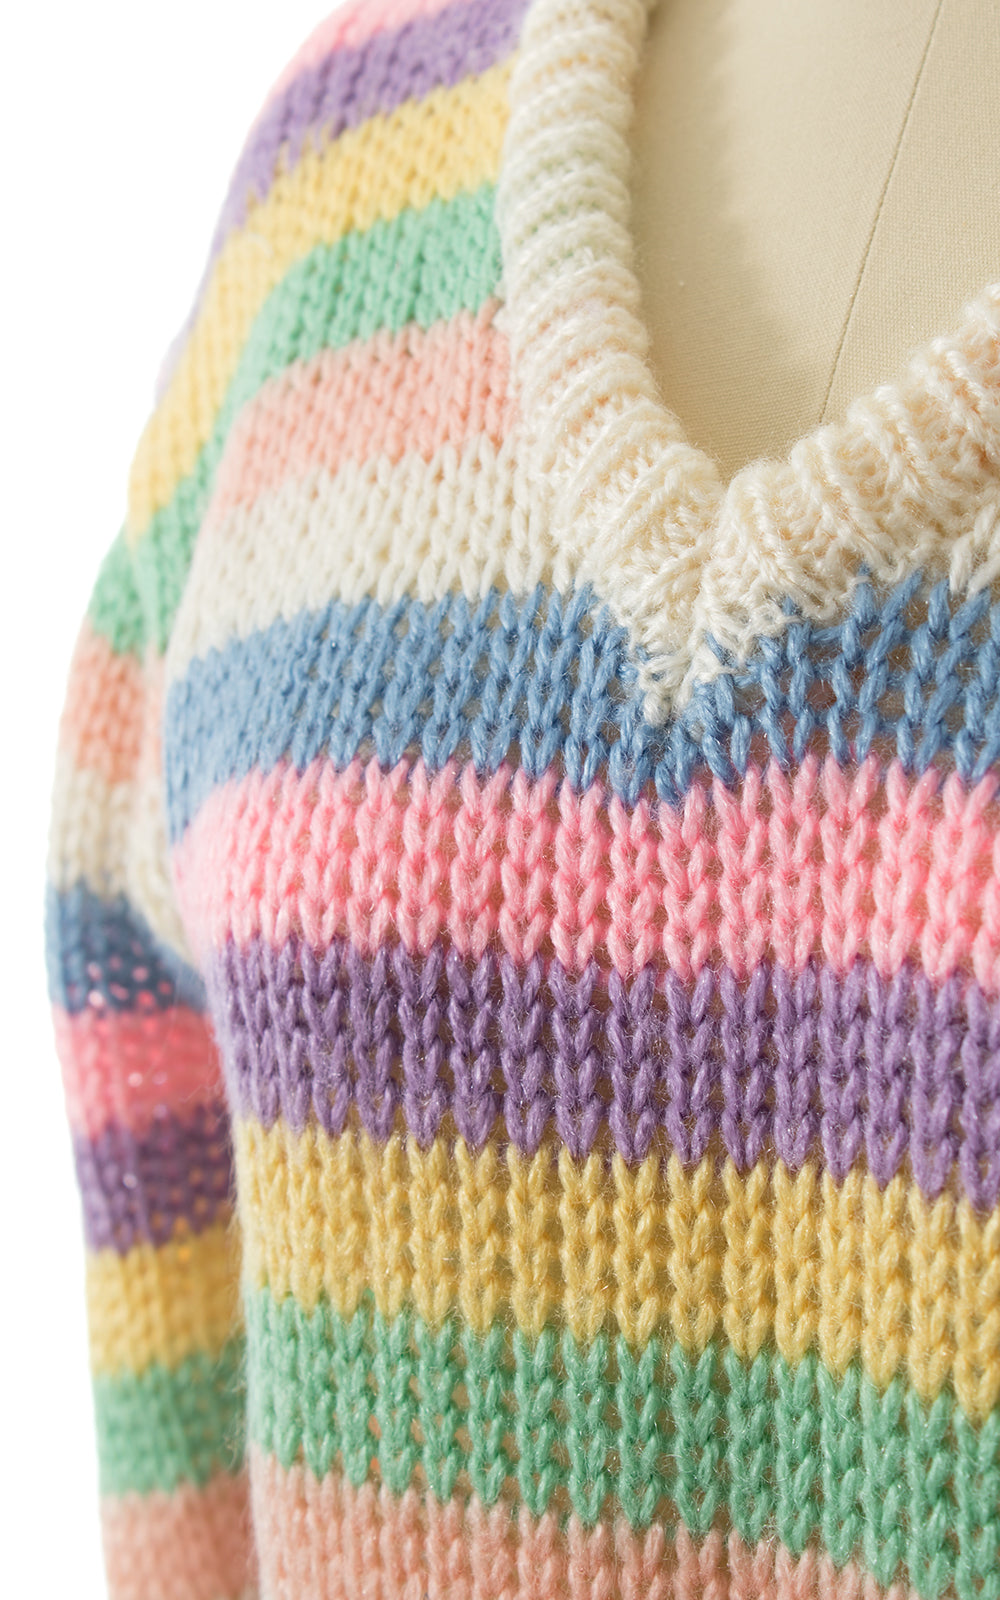 1970s 1980s Pastel Striped Sweater BirthdayLifeVintage